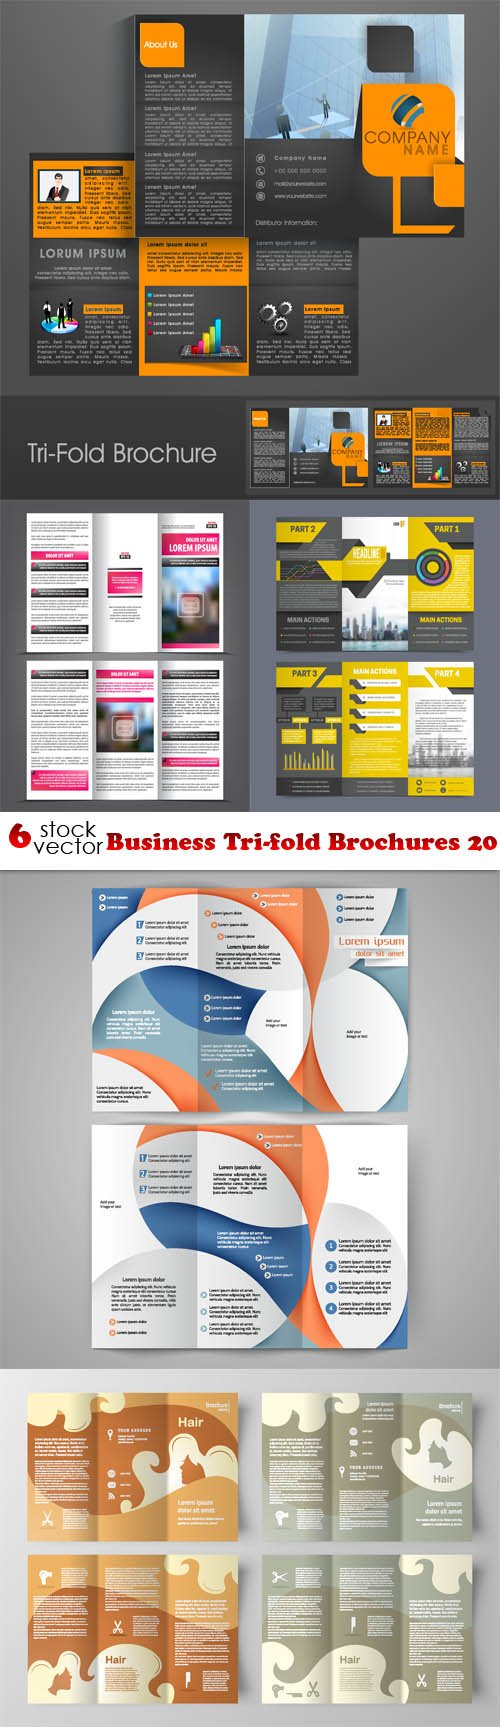 Vectors - Business Tri-fold Brochures 20